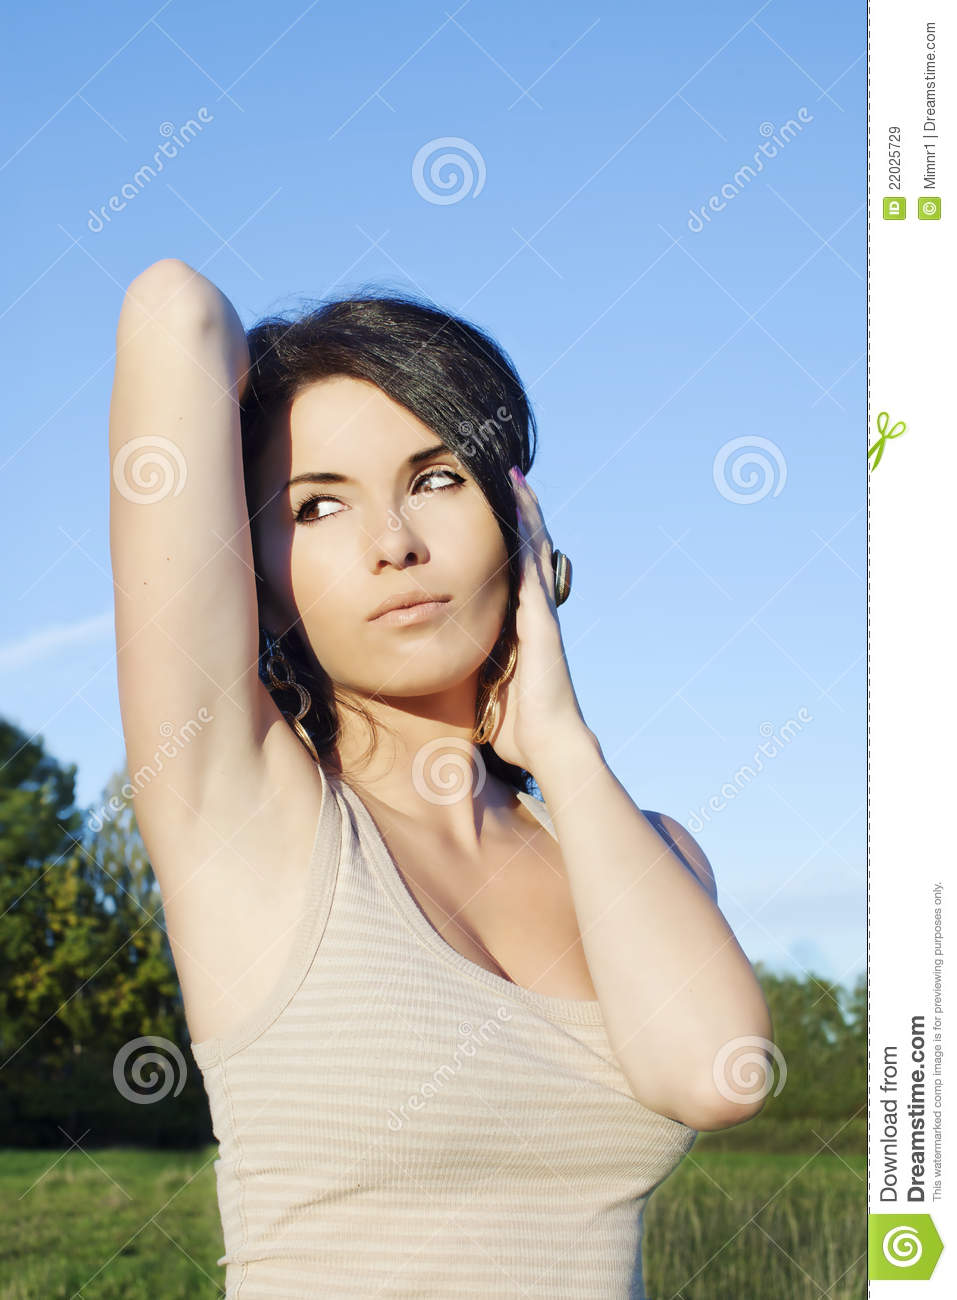 Womens shaved armpits